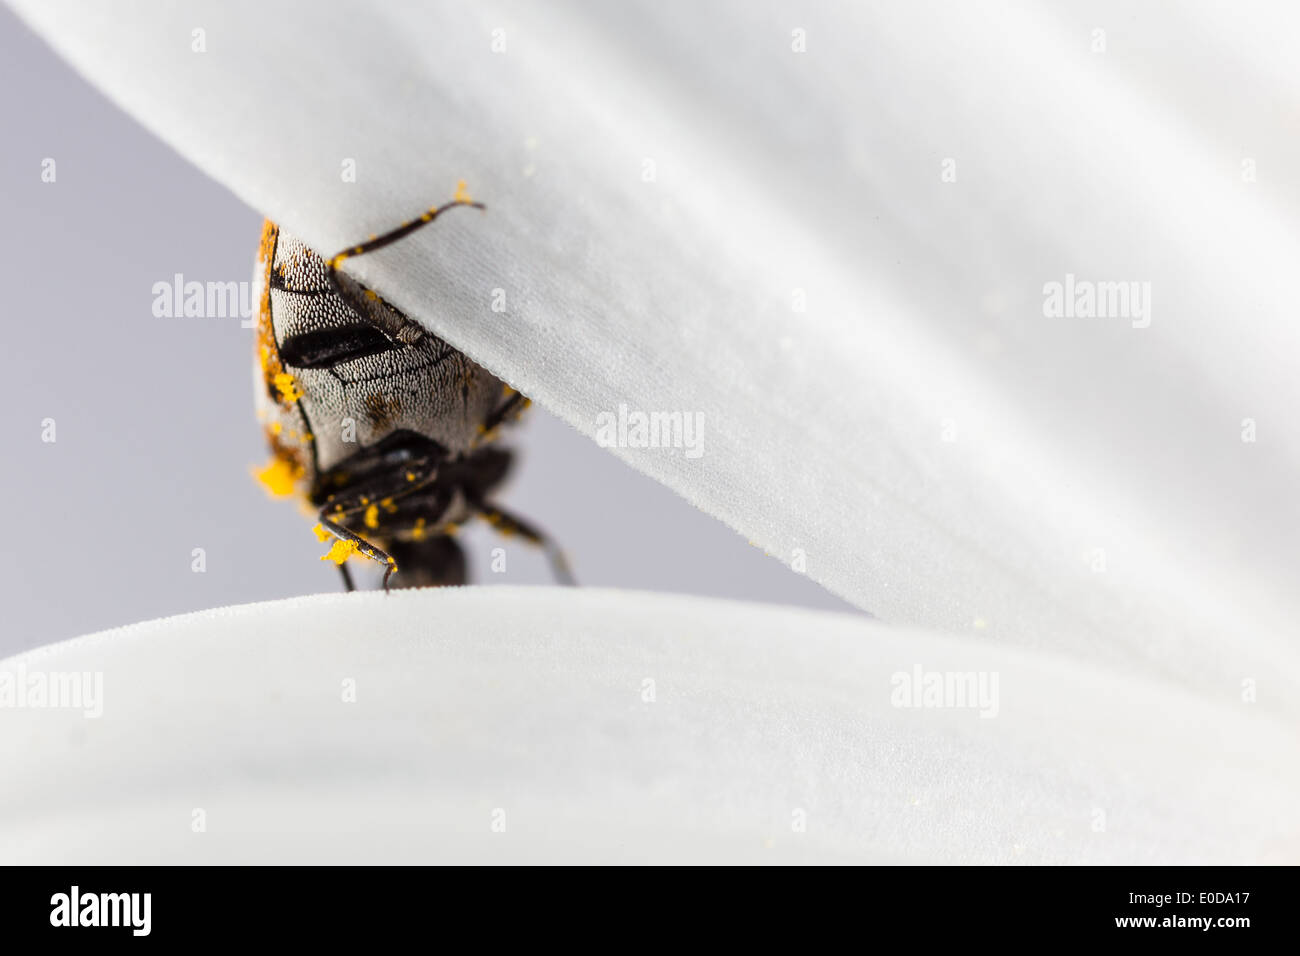 macro shot of a varied carpet beetle on a white daisy - Stock Image